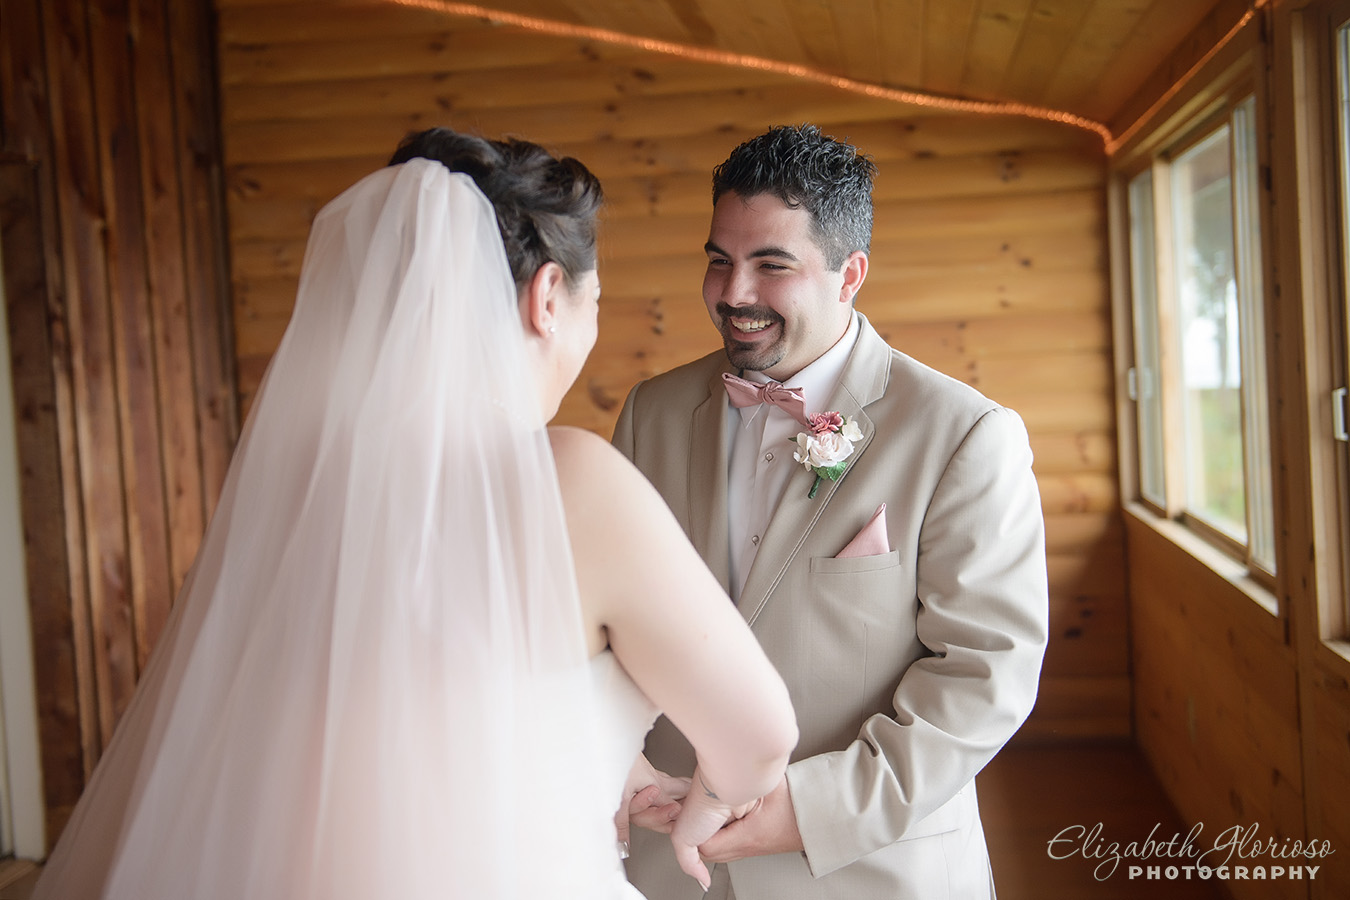 Vermilion_wedding_Glorioso Photography_1022